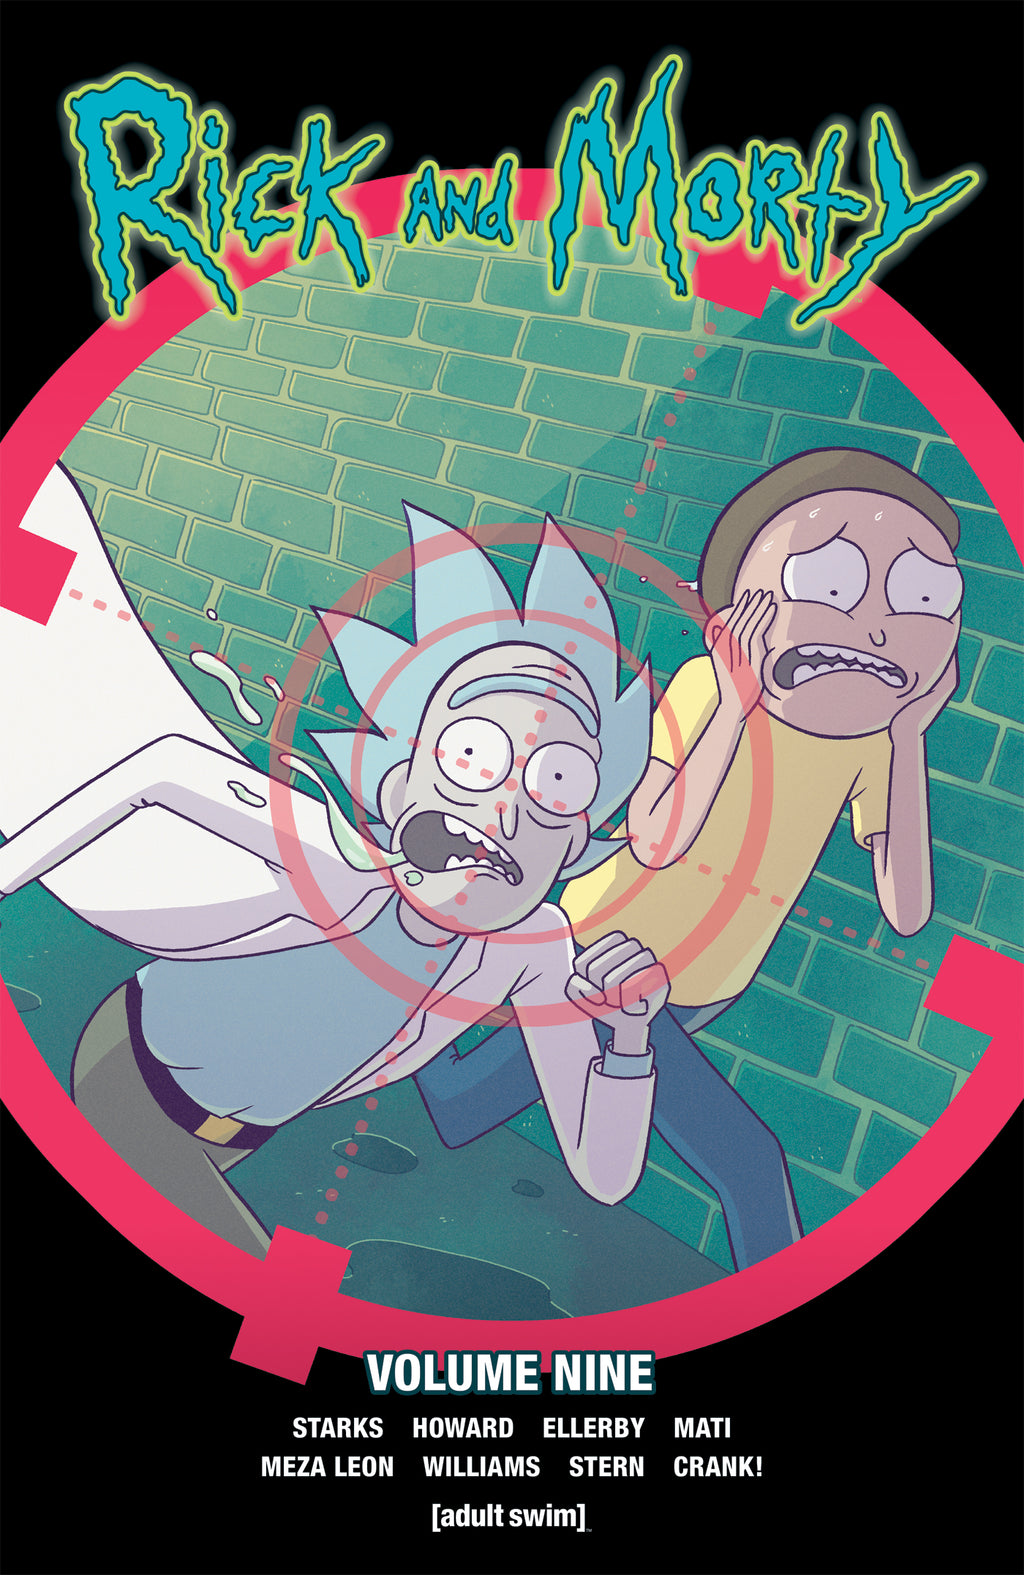 Rick and Morty Vol. 9